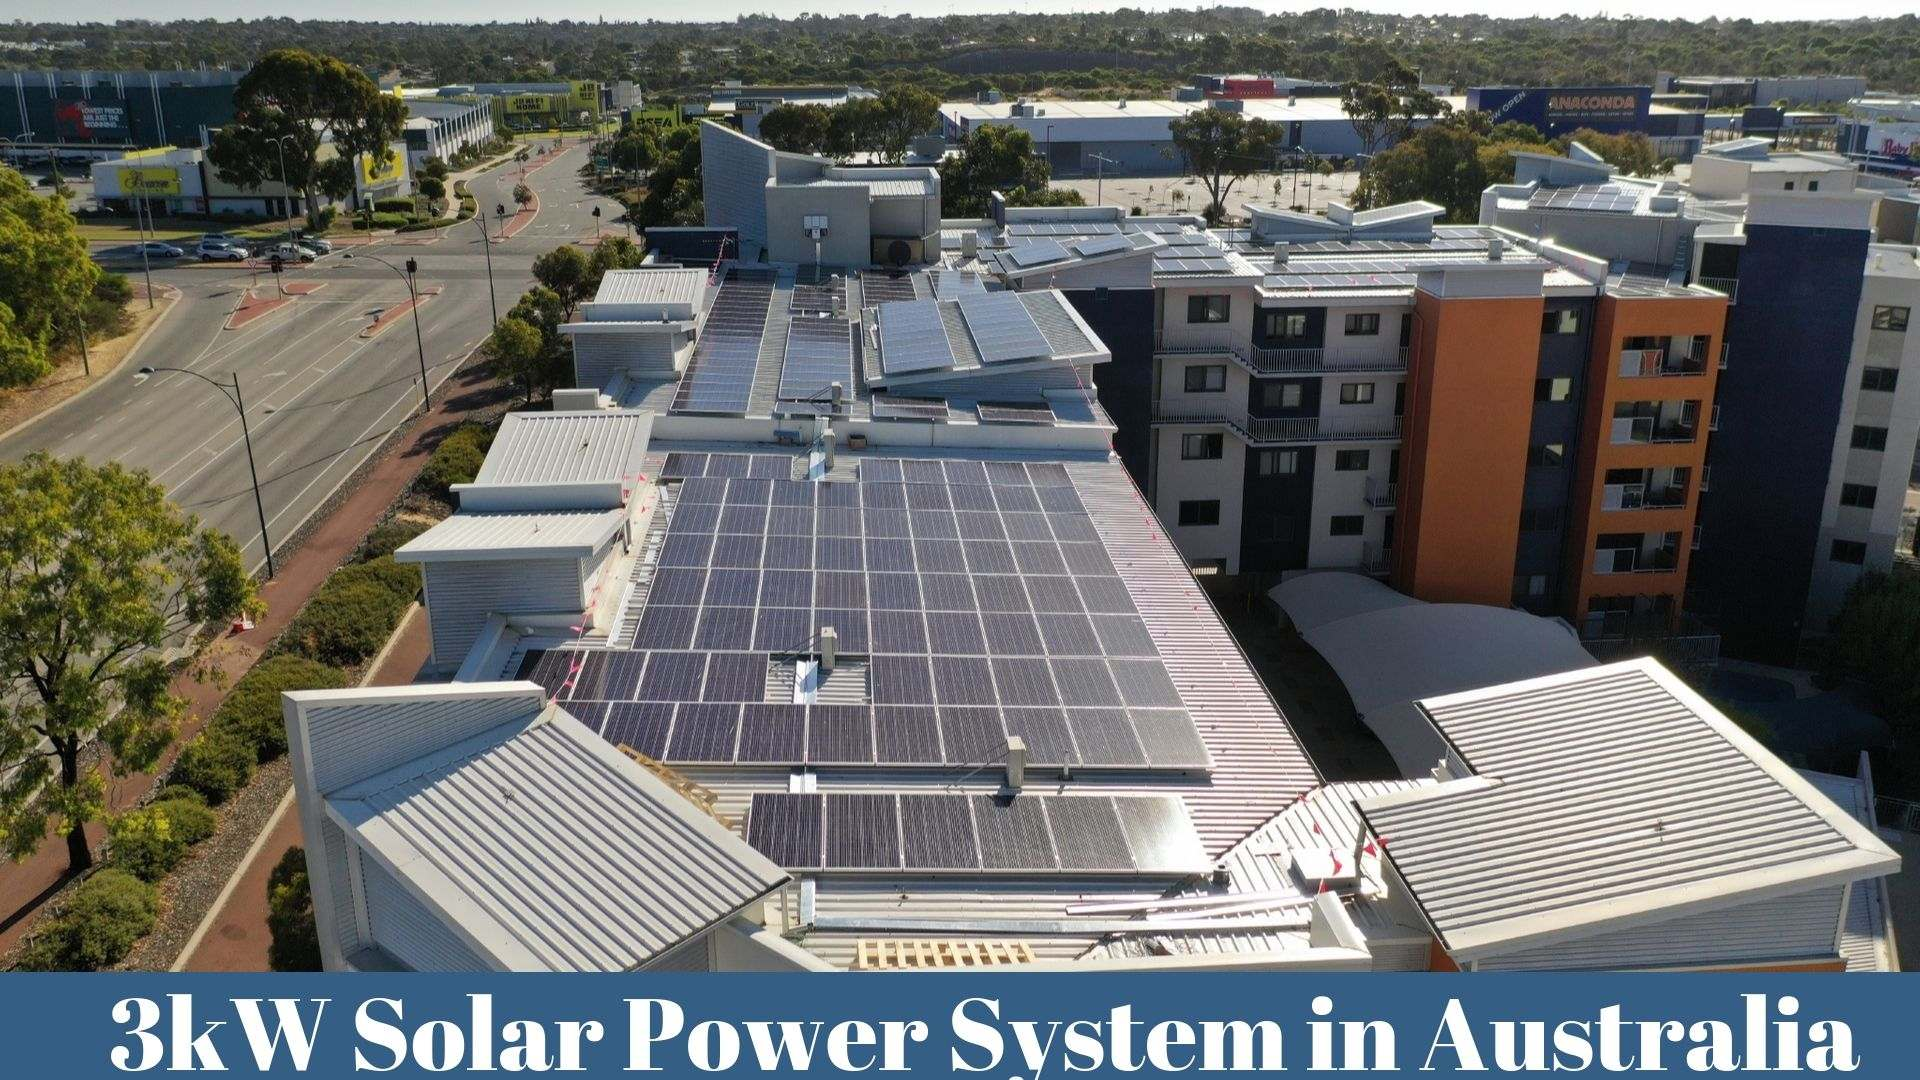 3kW Solar Power System in Australia